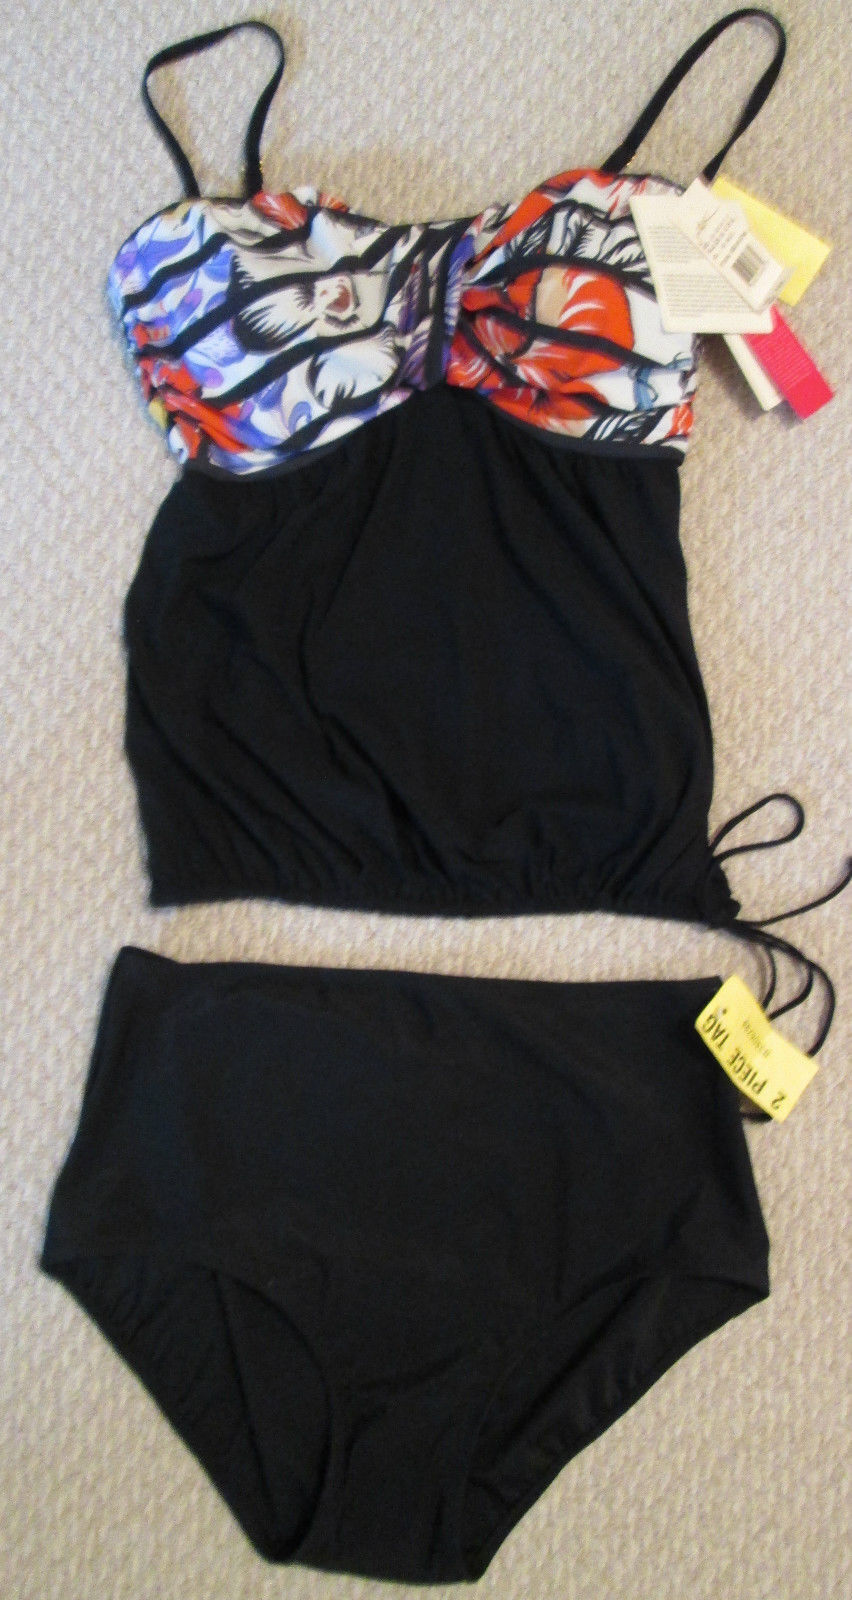 NEW LADIES SIZE 6 GOTTEX TANKINI 2 PC SWIMSUIT MSRP 158.00 MULTI-COLOR NWT